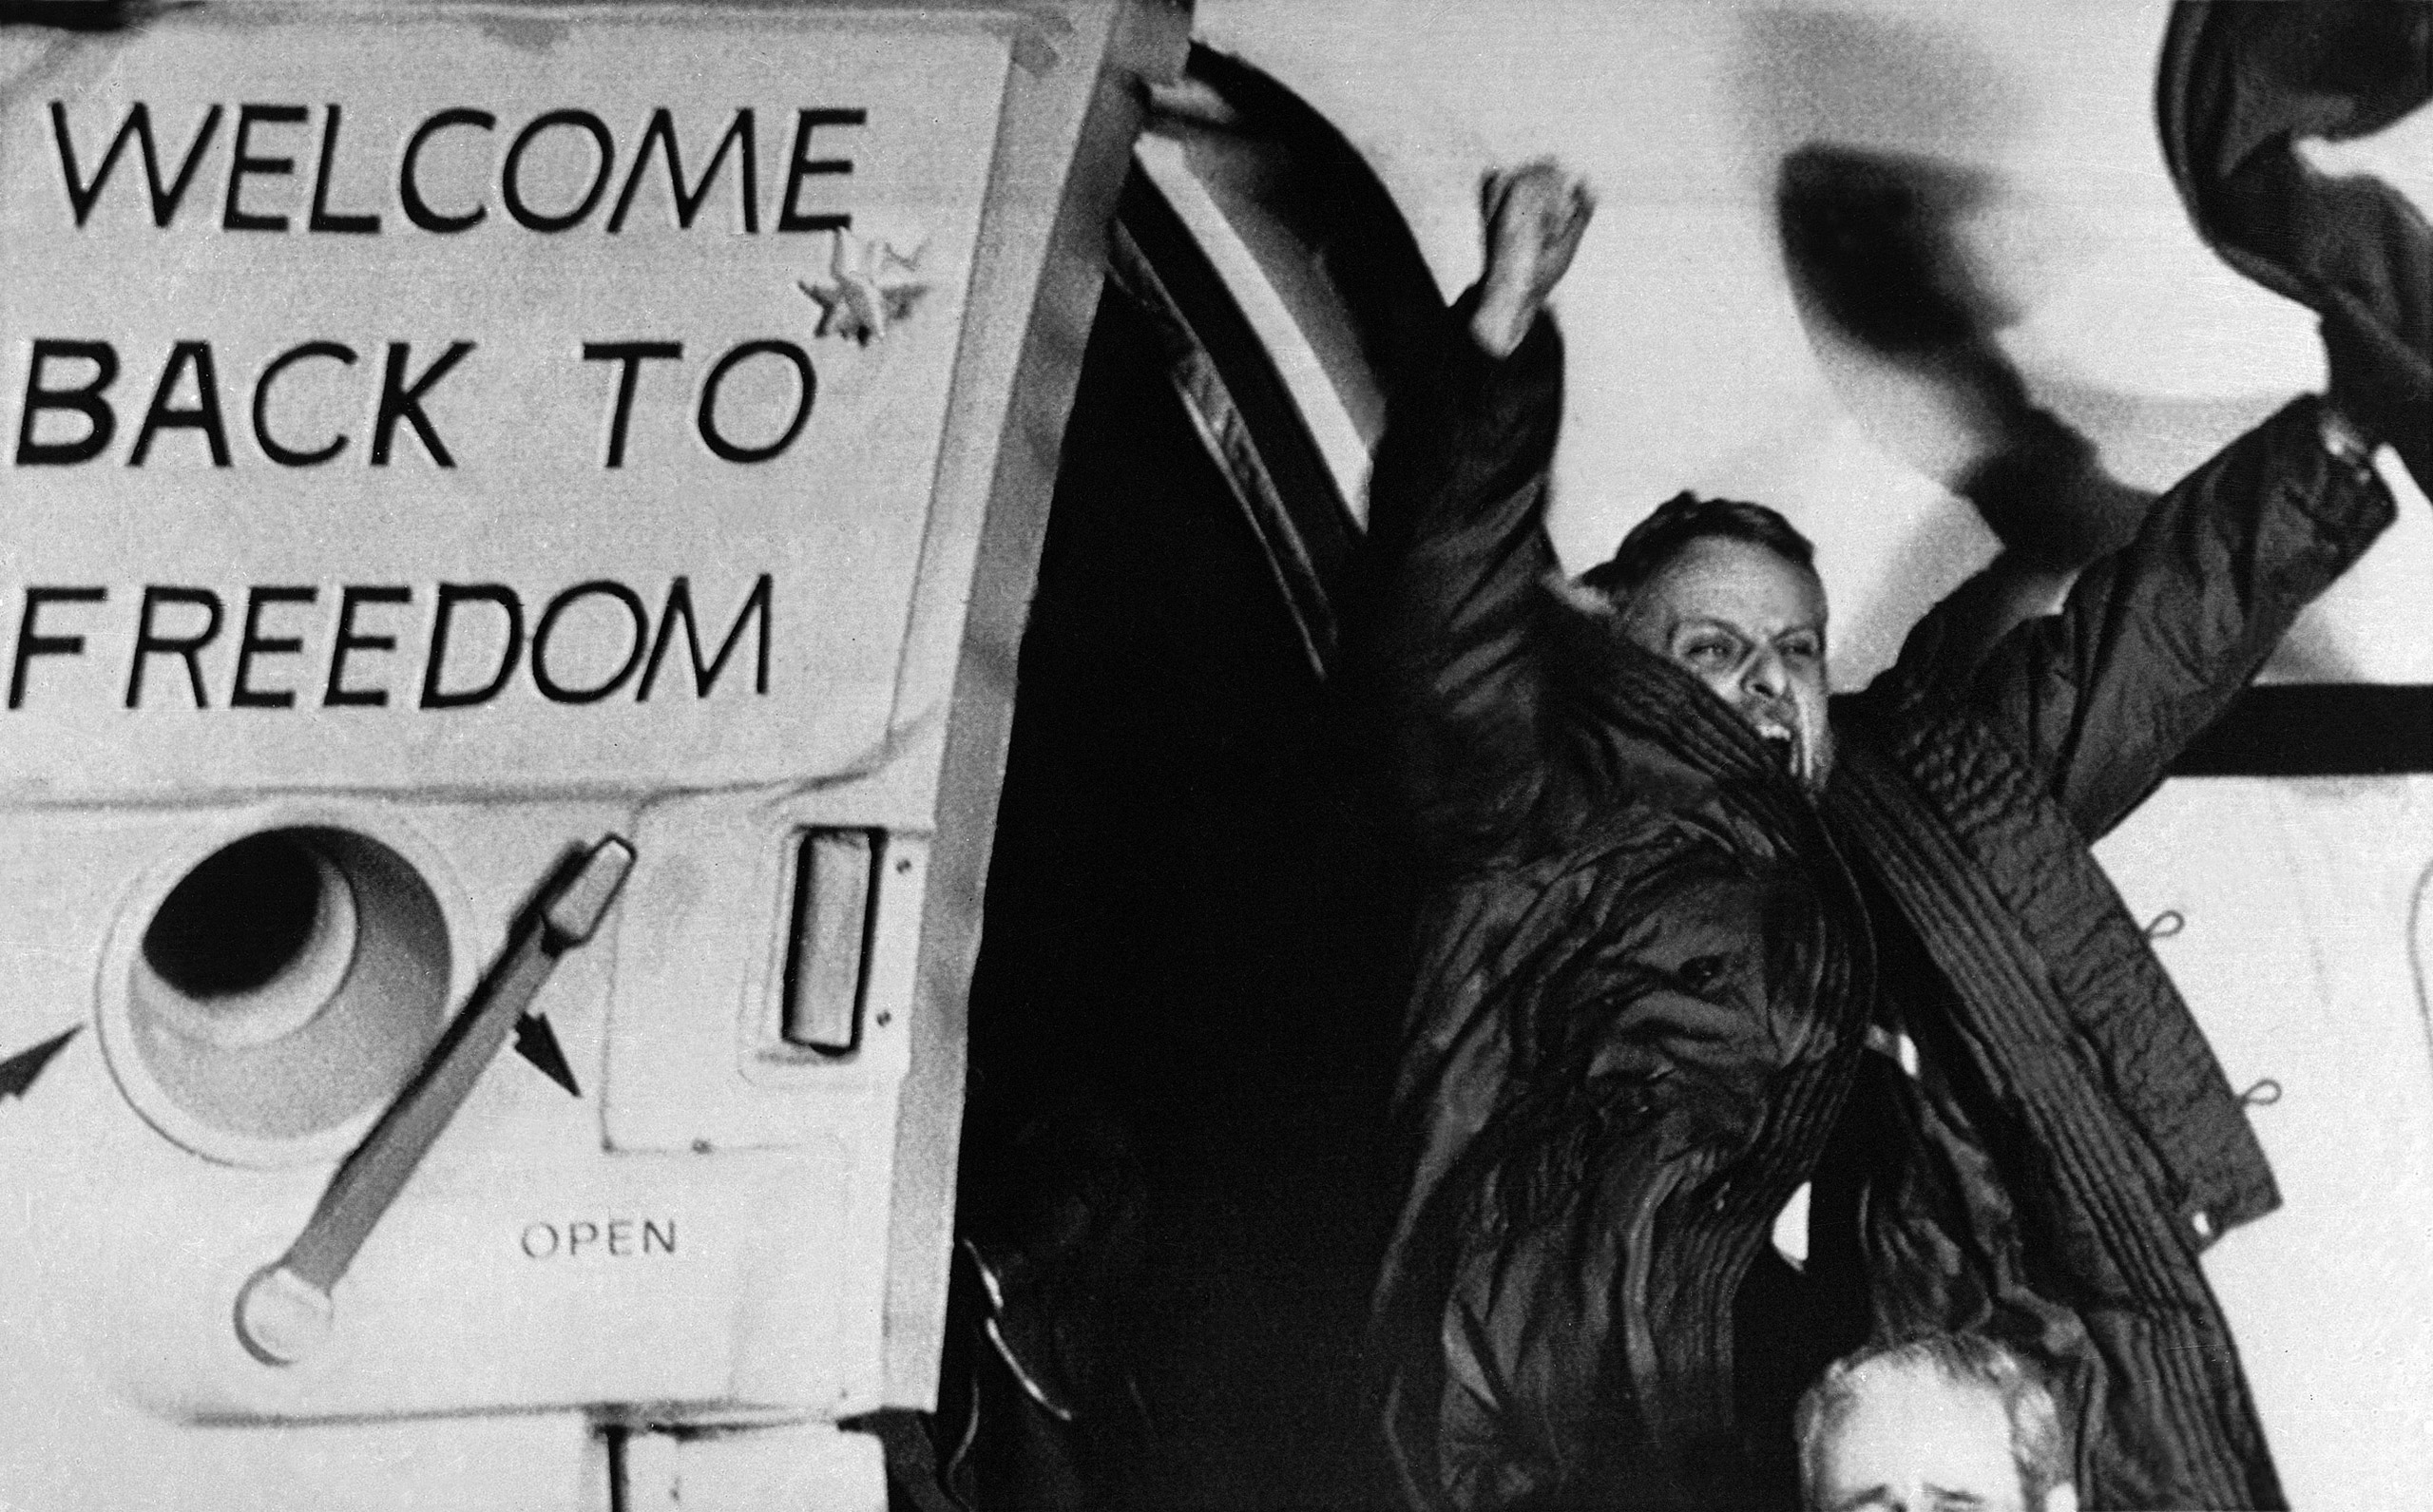 Freed U.S. hostage David Roeder shouts and waves as he arrives at Rhein-Main U.S. Air Force base in Frankfurt, Germany. Roeder was among 52 Americans held hostage in Iran for 444 days after their capture at the U.S. Embassy in Tehran. Jan. 21, 1981.